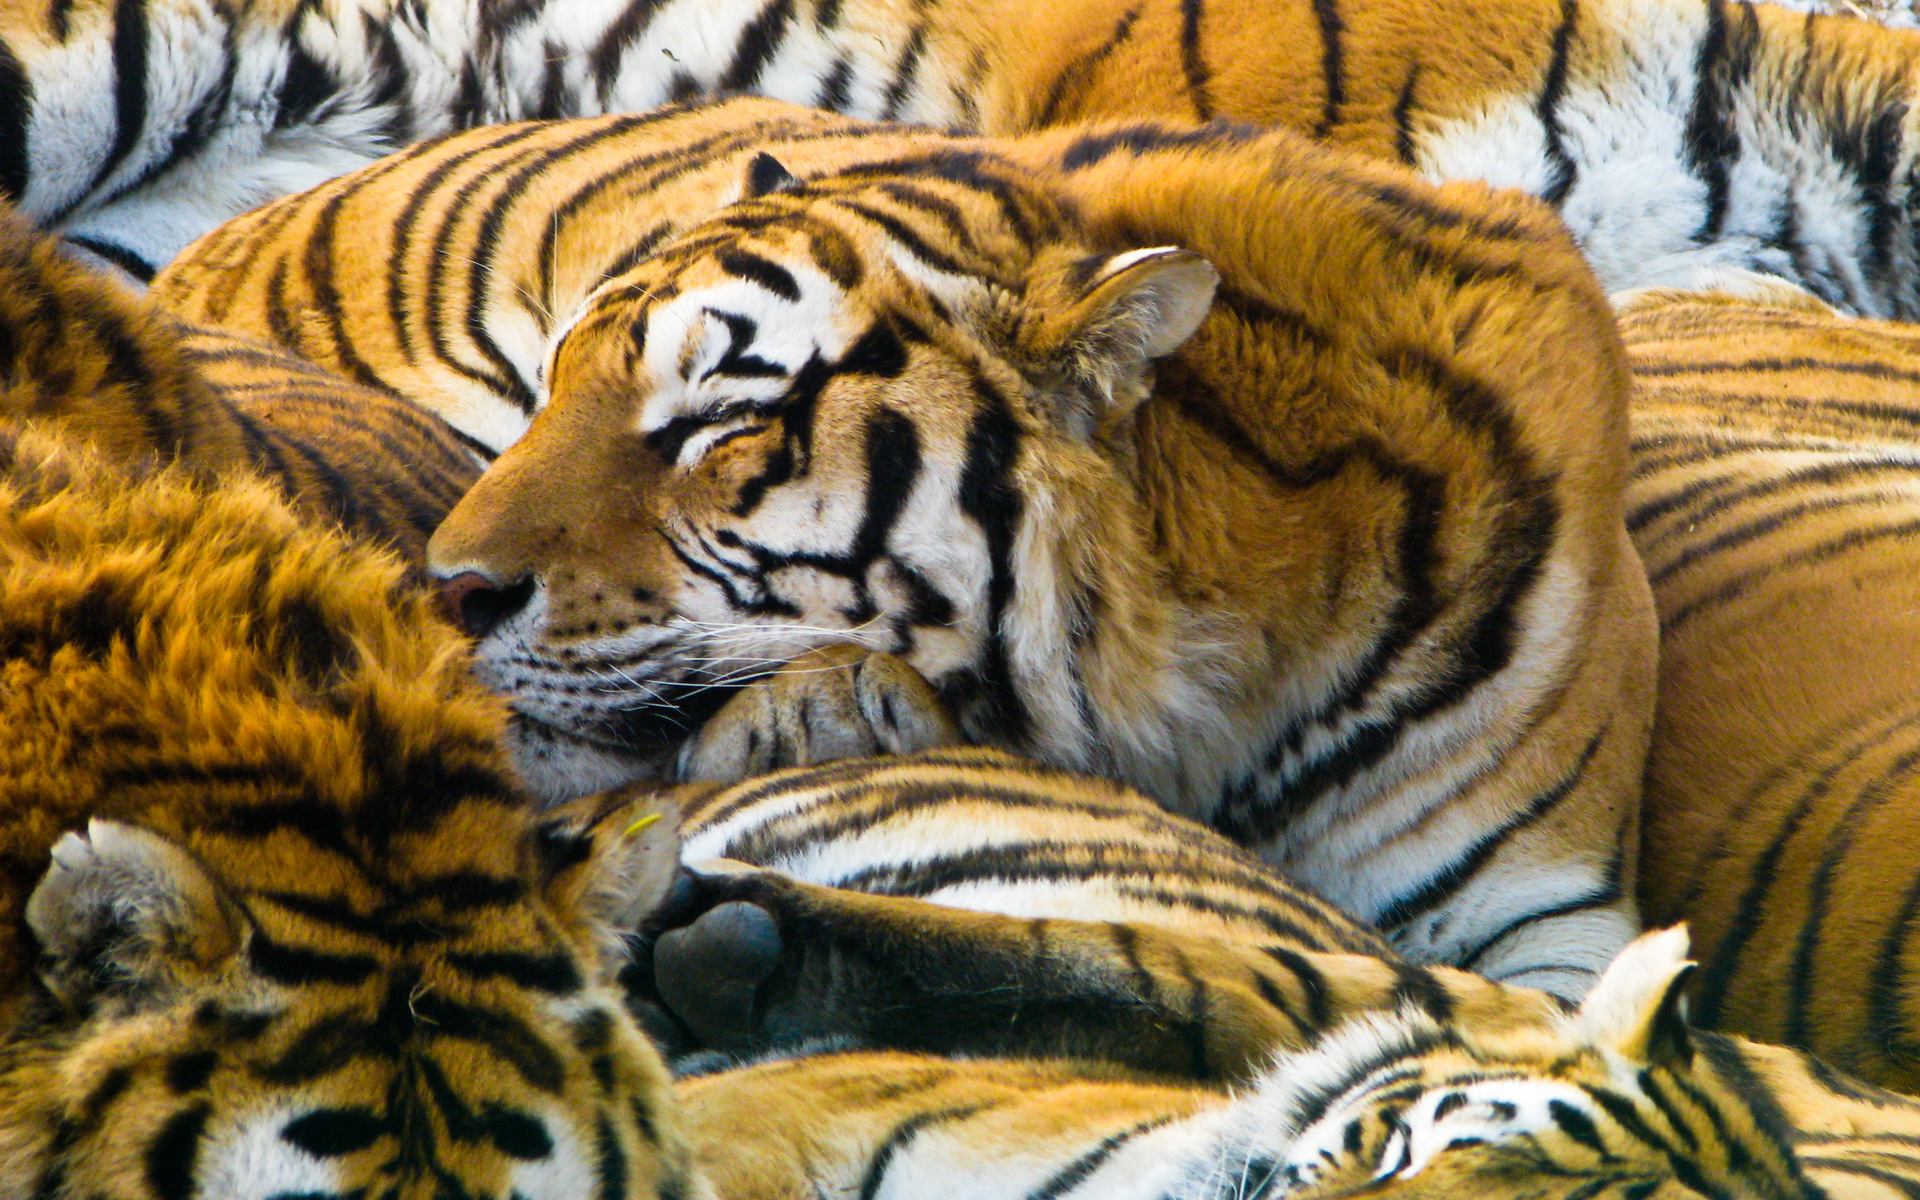 Sleeping Tigers 1476.13 Kb